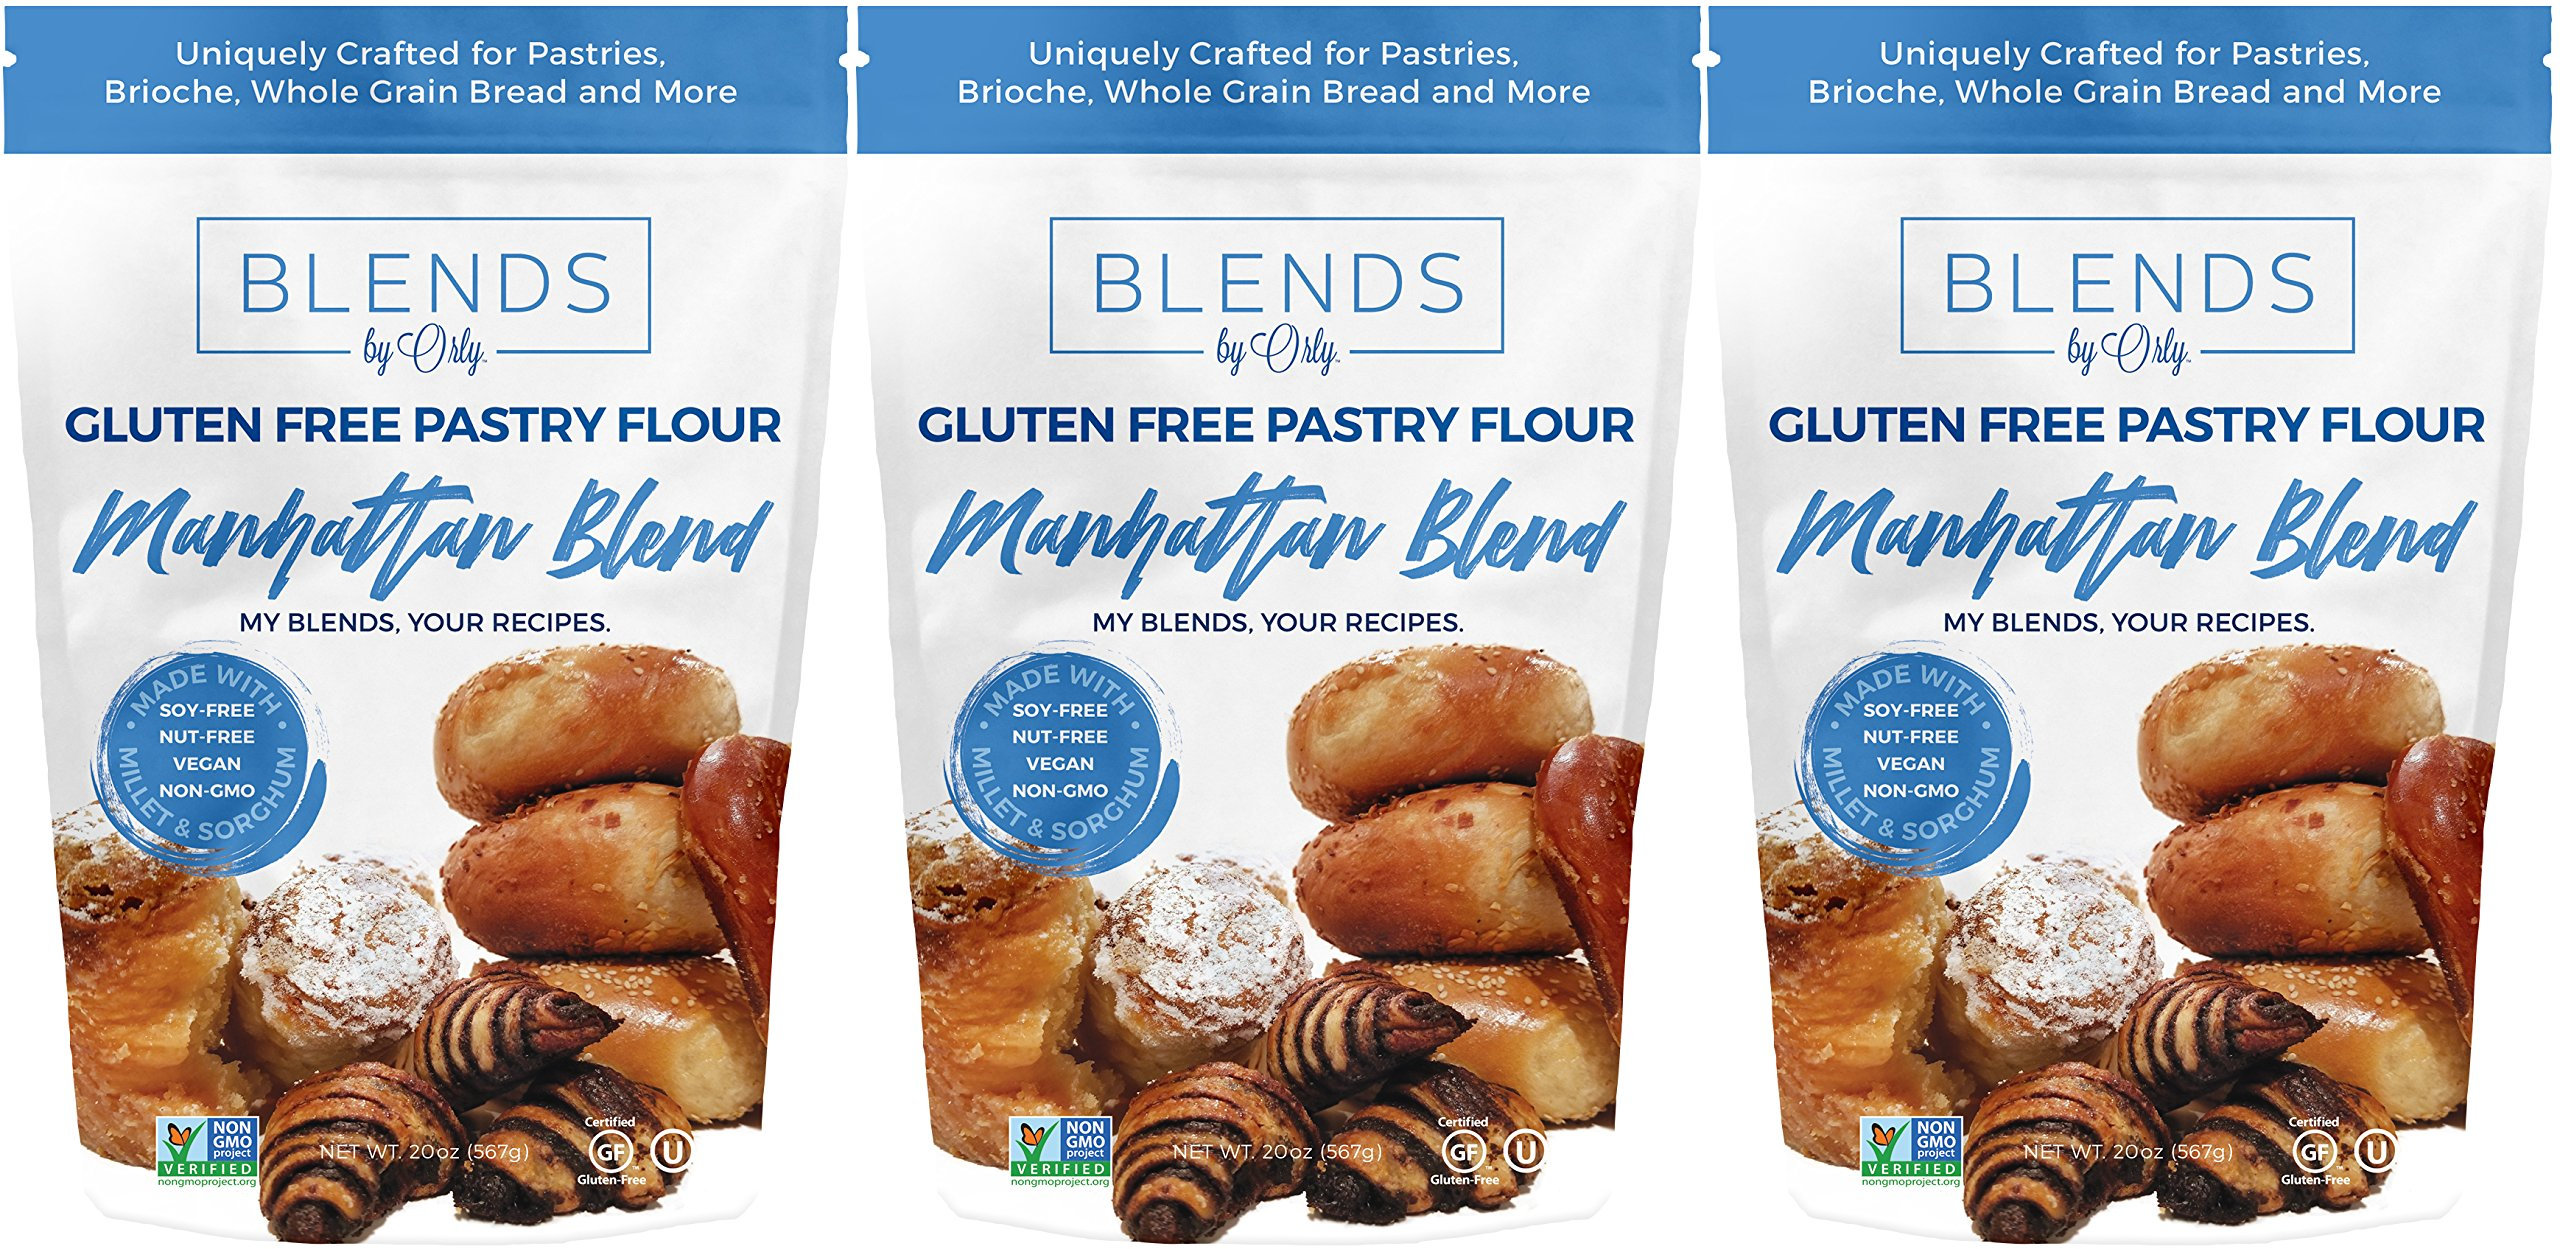 Premium Gluten Free Pastry Flour   Gluten Free Donut Flour - Baking Flour for Gluten Free Challah Bread, GF Brioche Bread, GF Cinnamon Roll & GF Bagels from Manhattan Blends by Orly 60 OZ (Pack of 3) by Blends By Orly